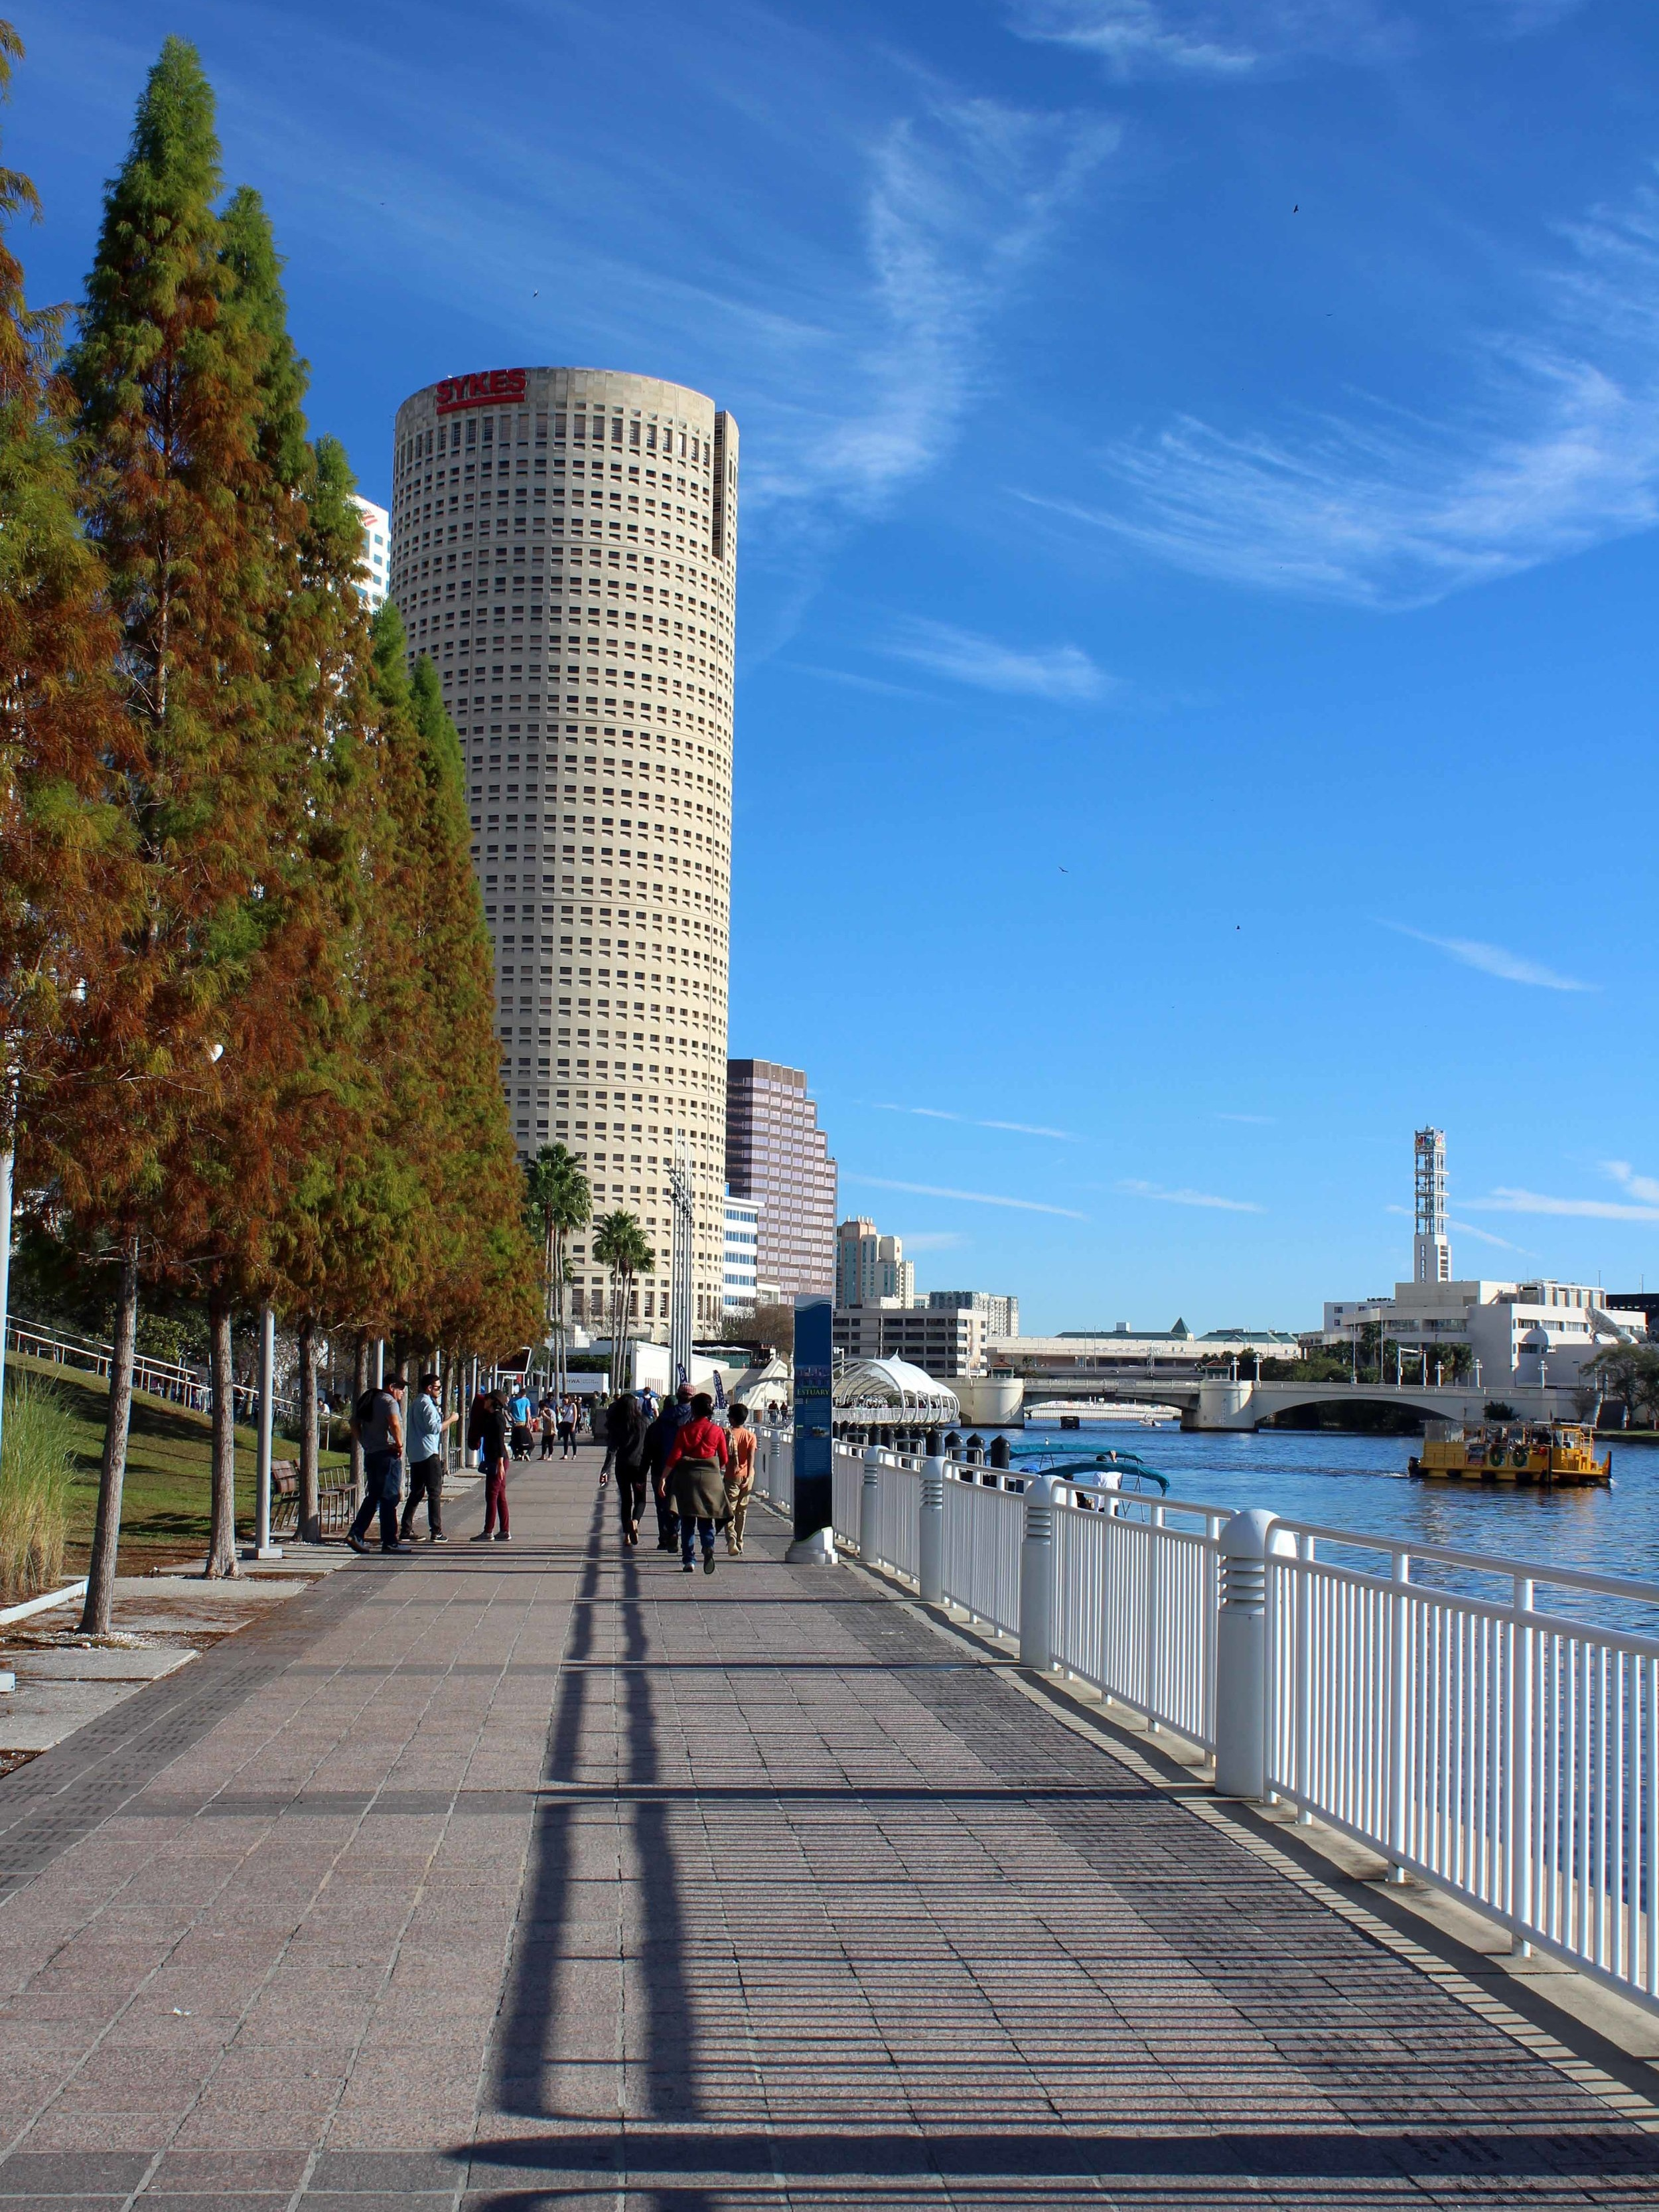 Strolling along Tampa Bay's Riverwalk, which sits along the Hillsborough River